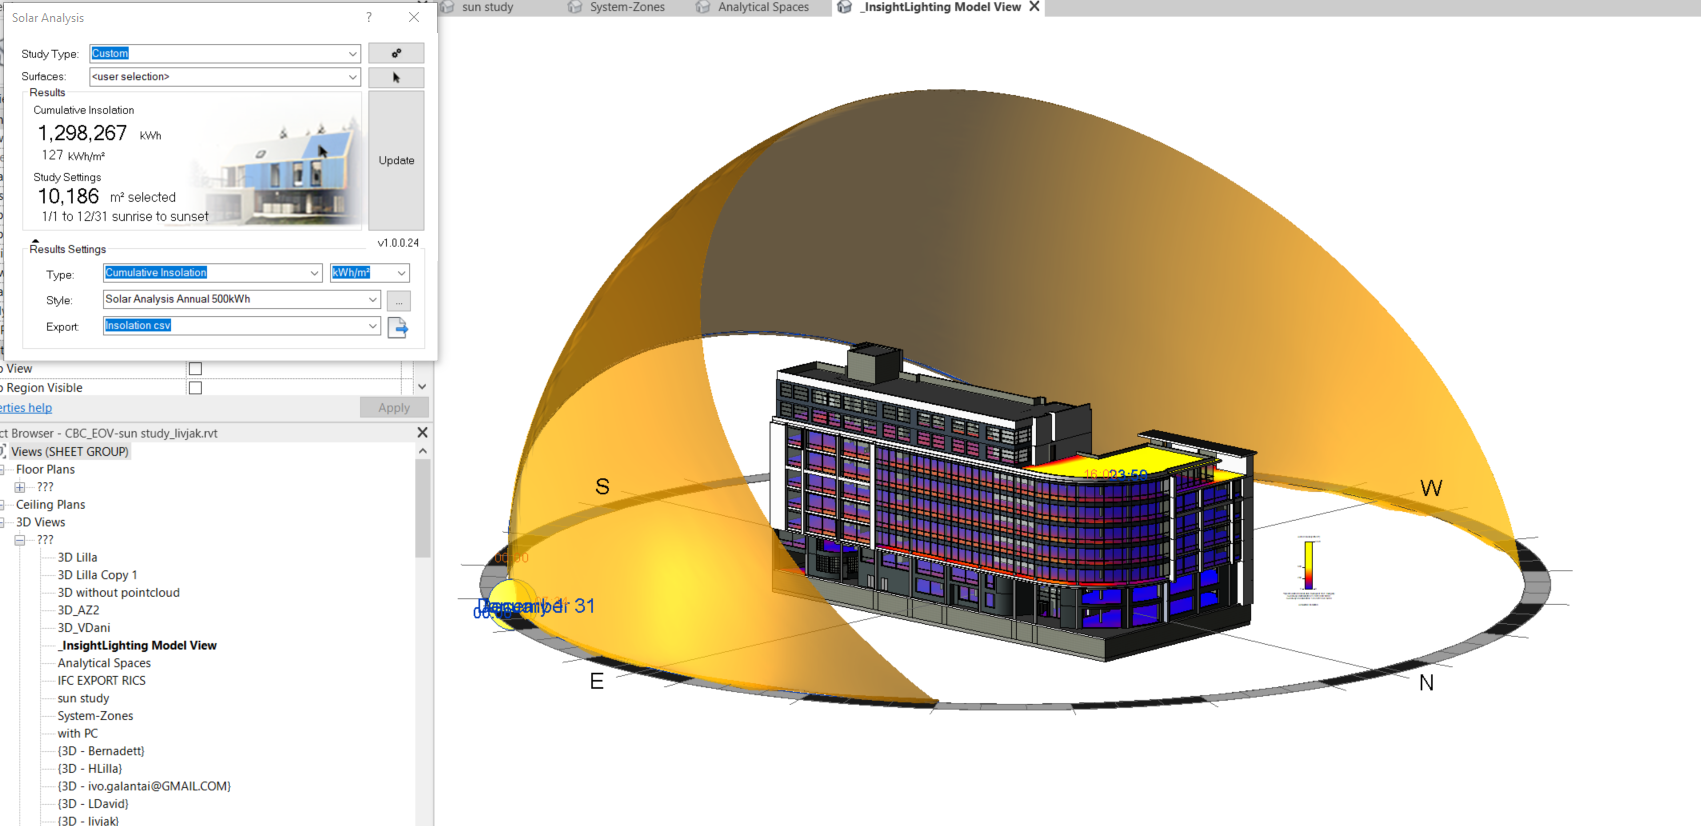 Analysis of solar radiation of CBC office building (BuildEXT HQ)